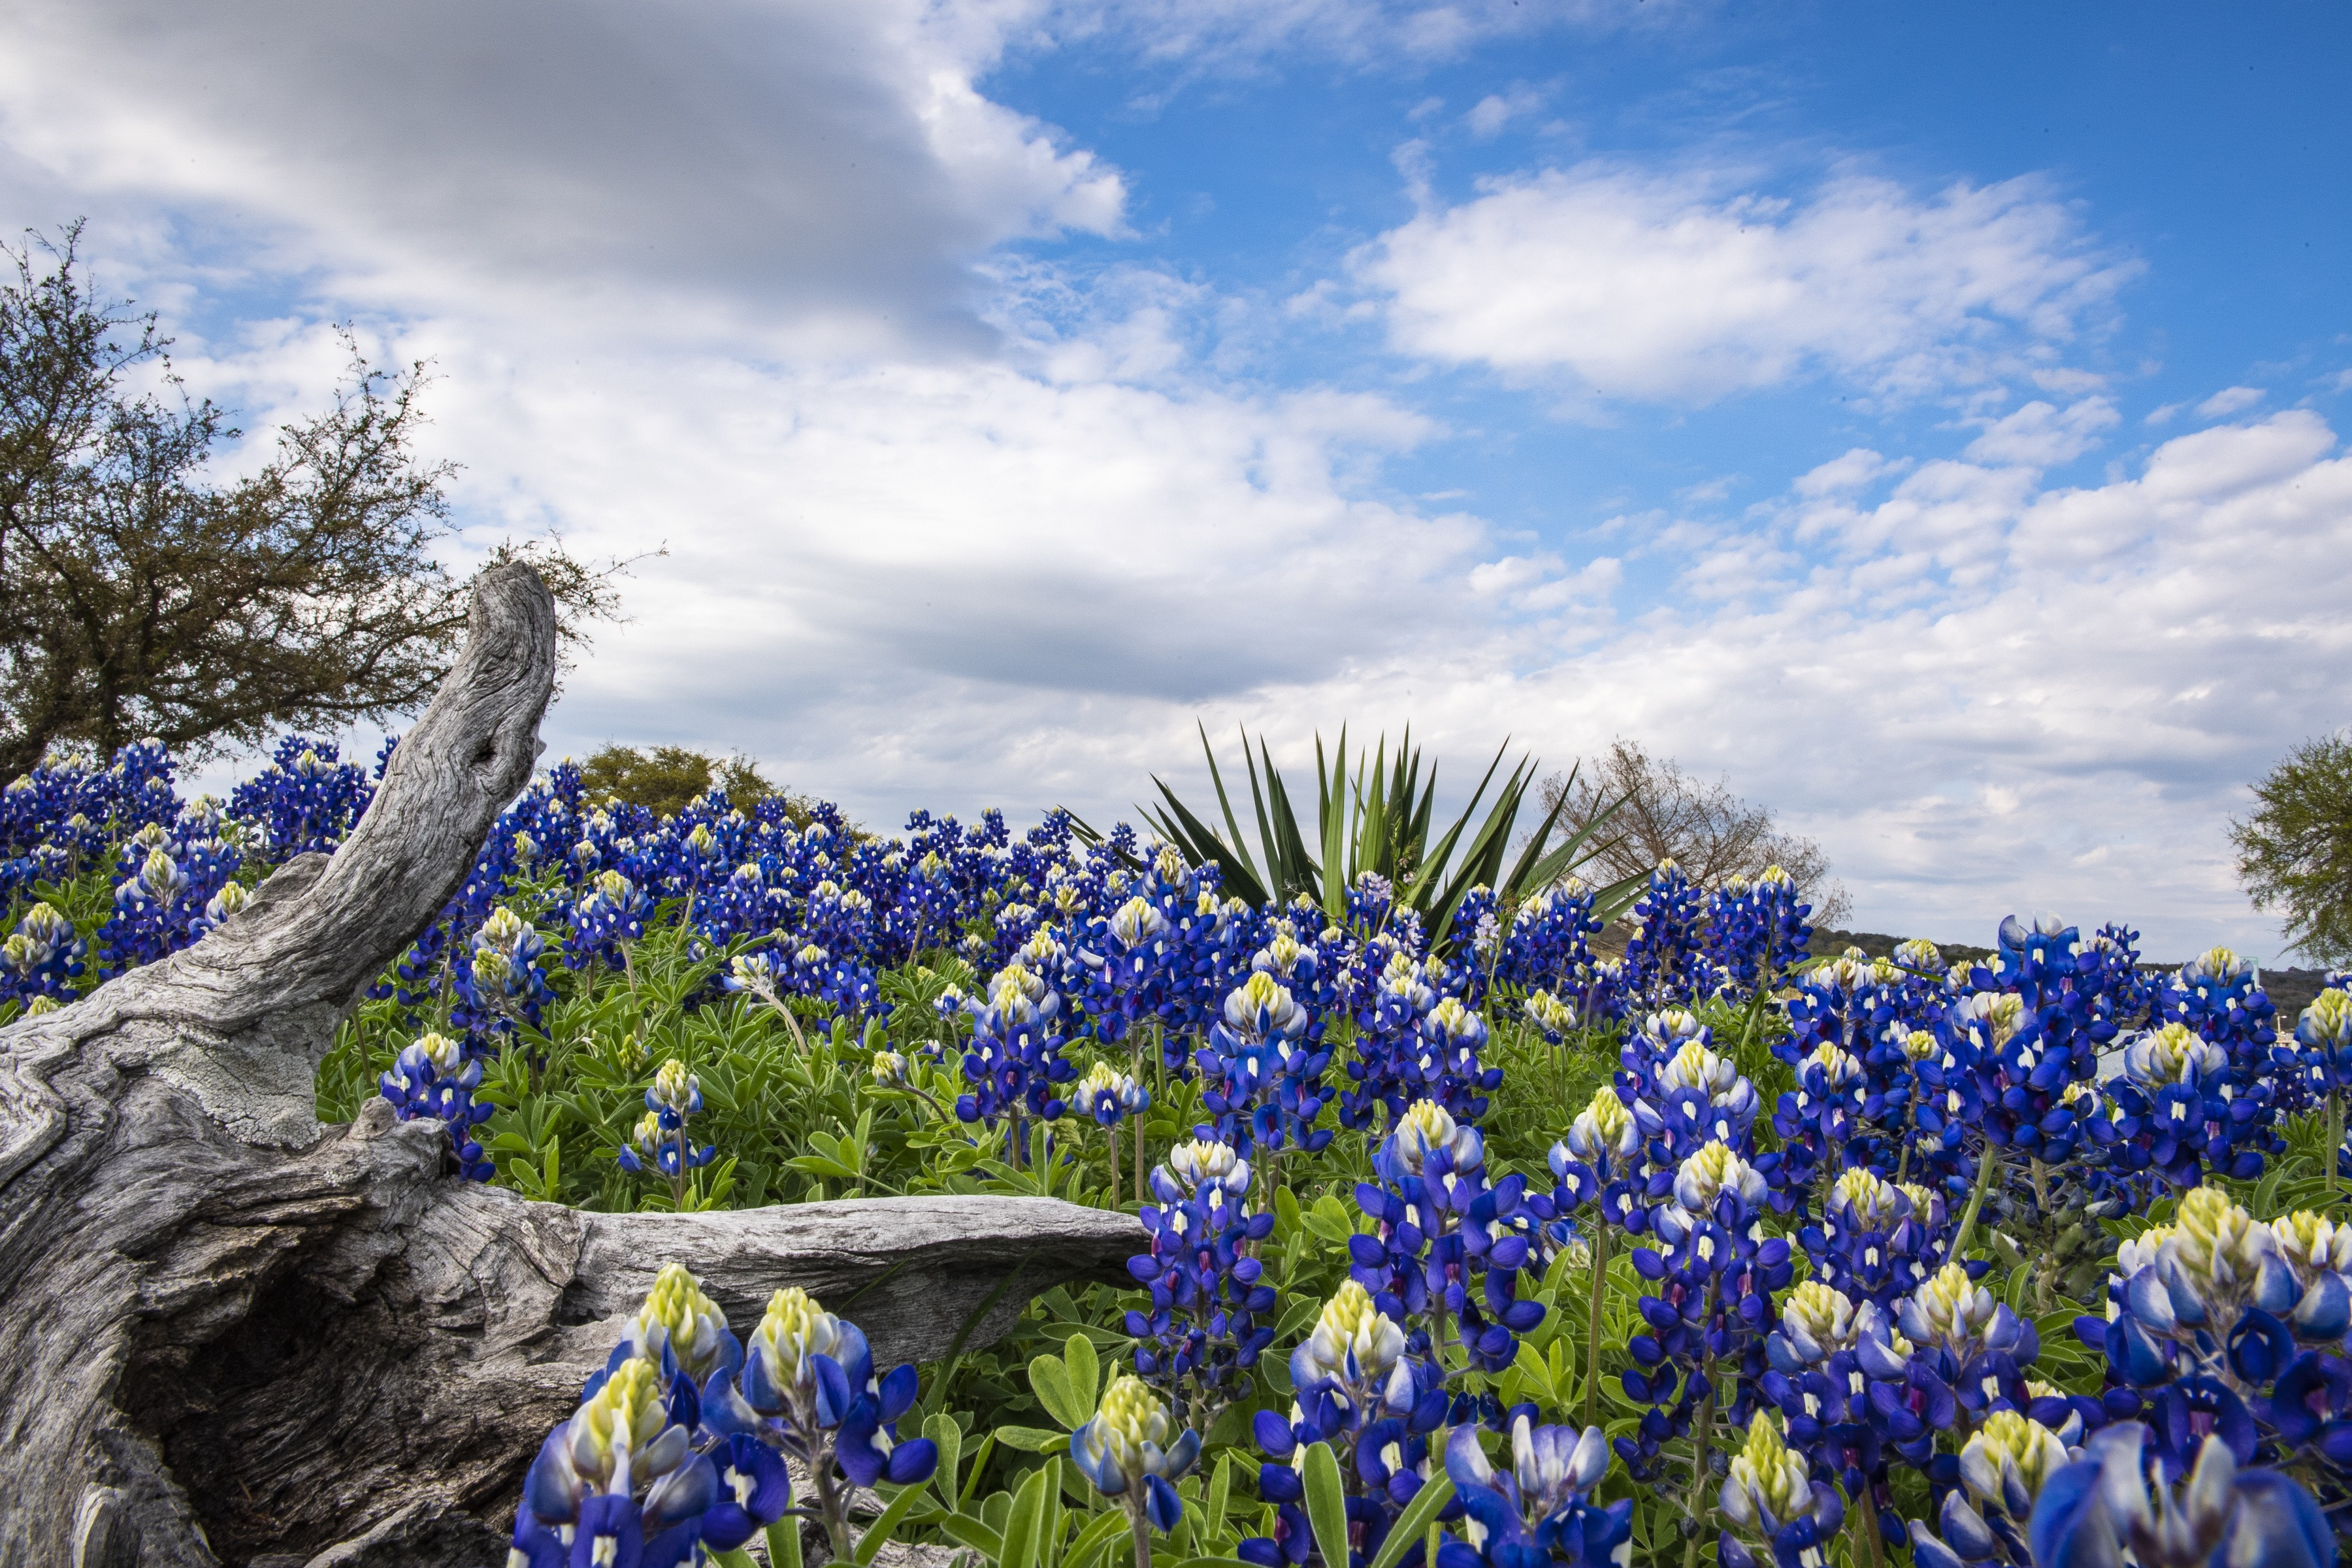 Texas Parks and Wildlife Department | LinkedIn